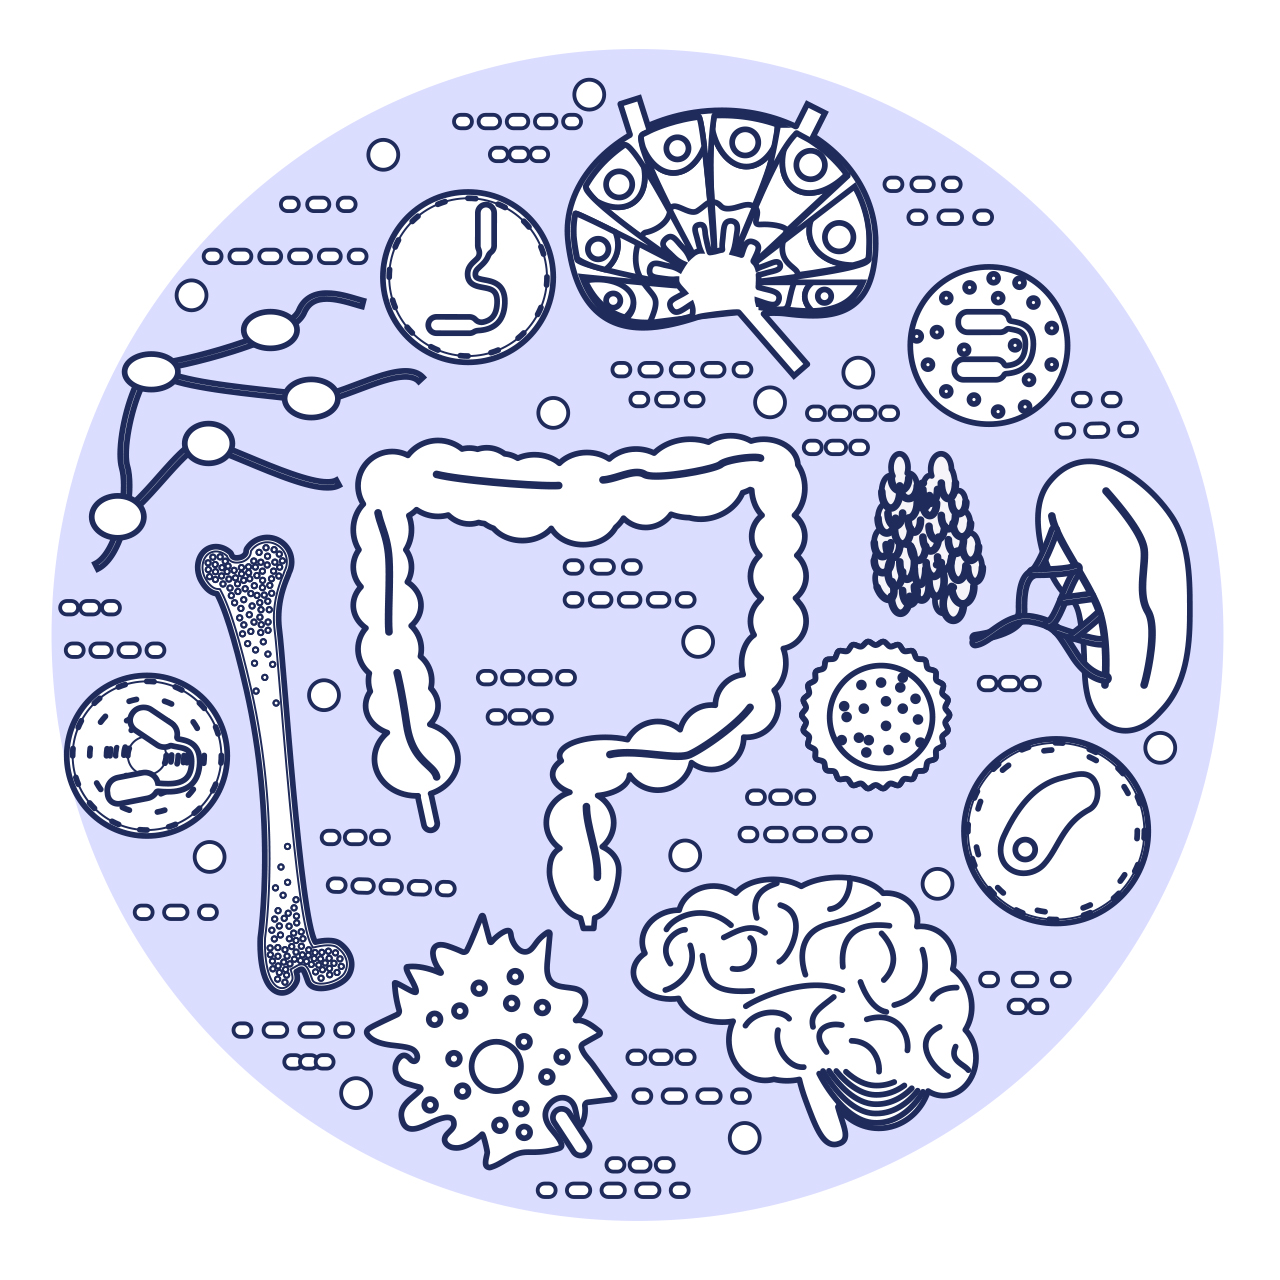 A circle holds icons representing various components of the immune system.